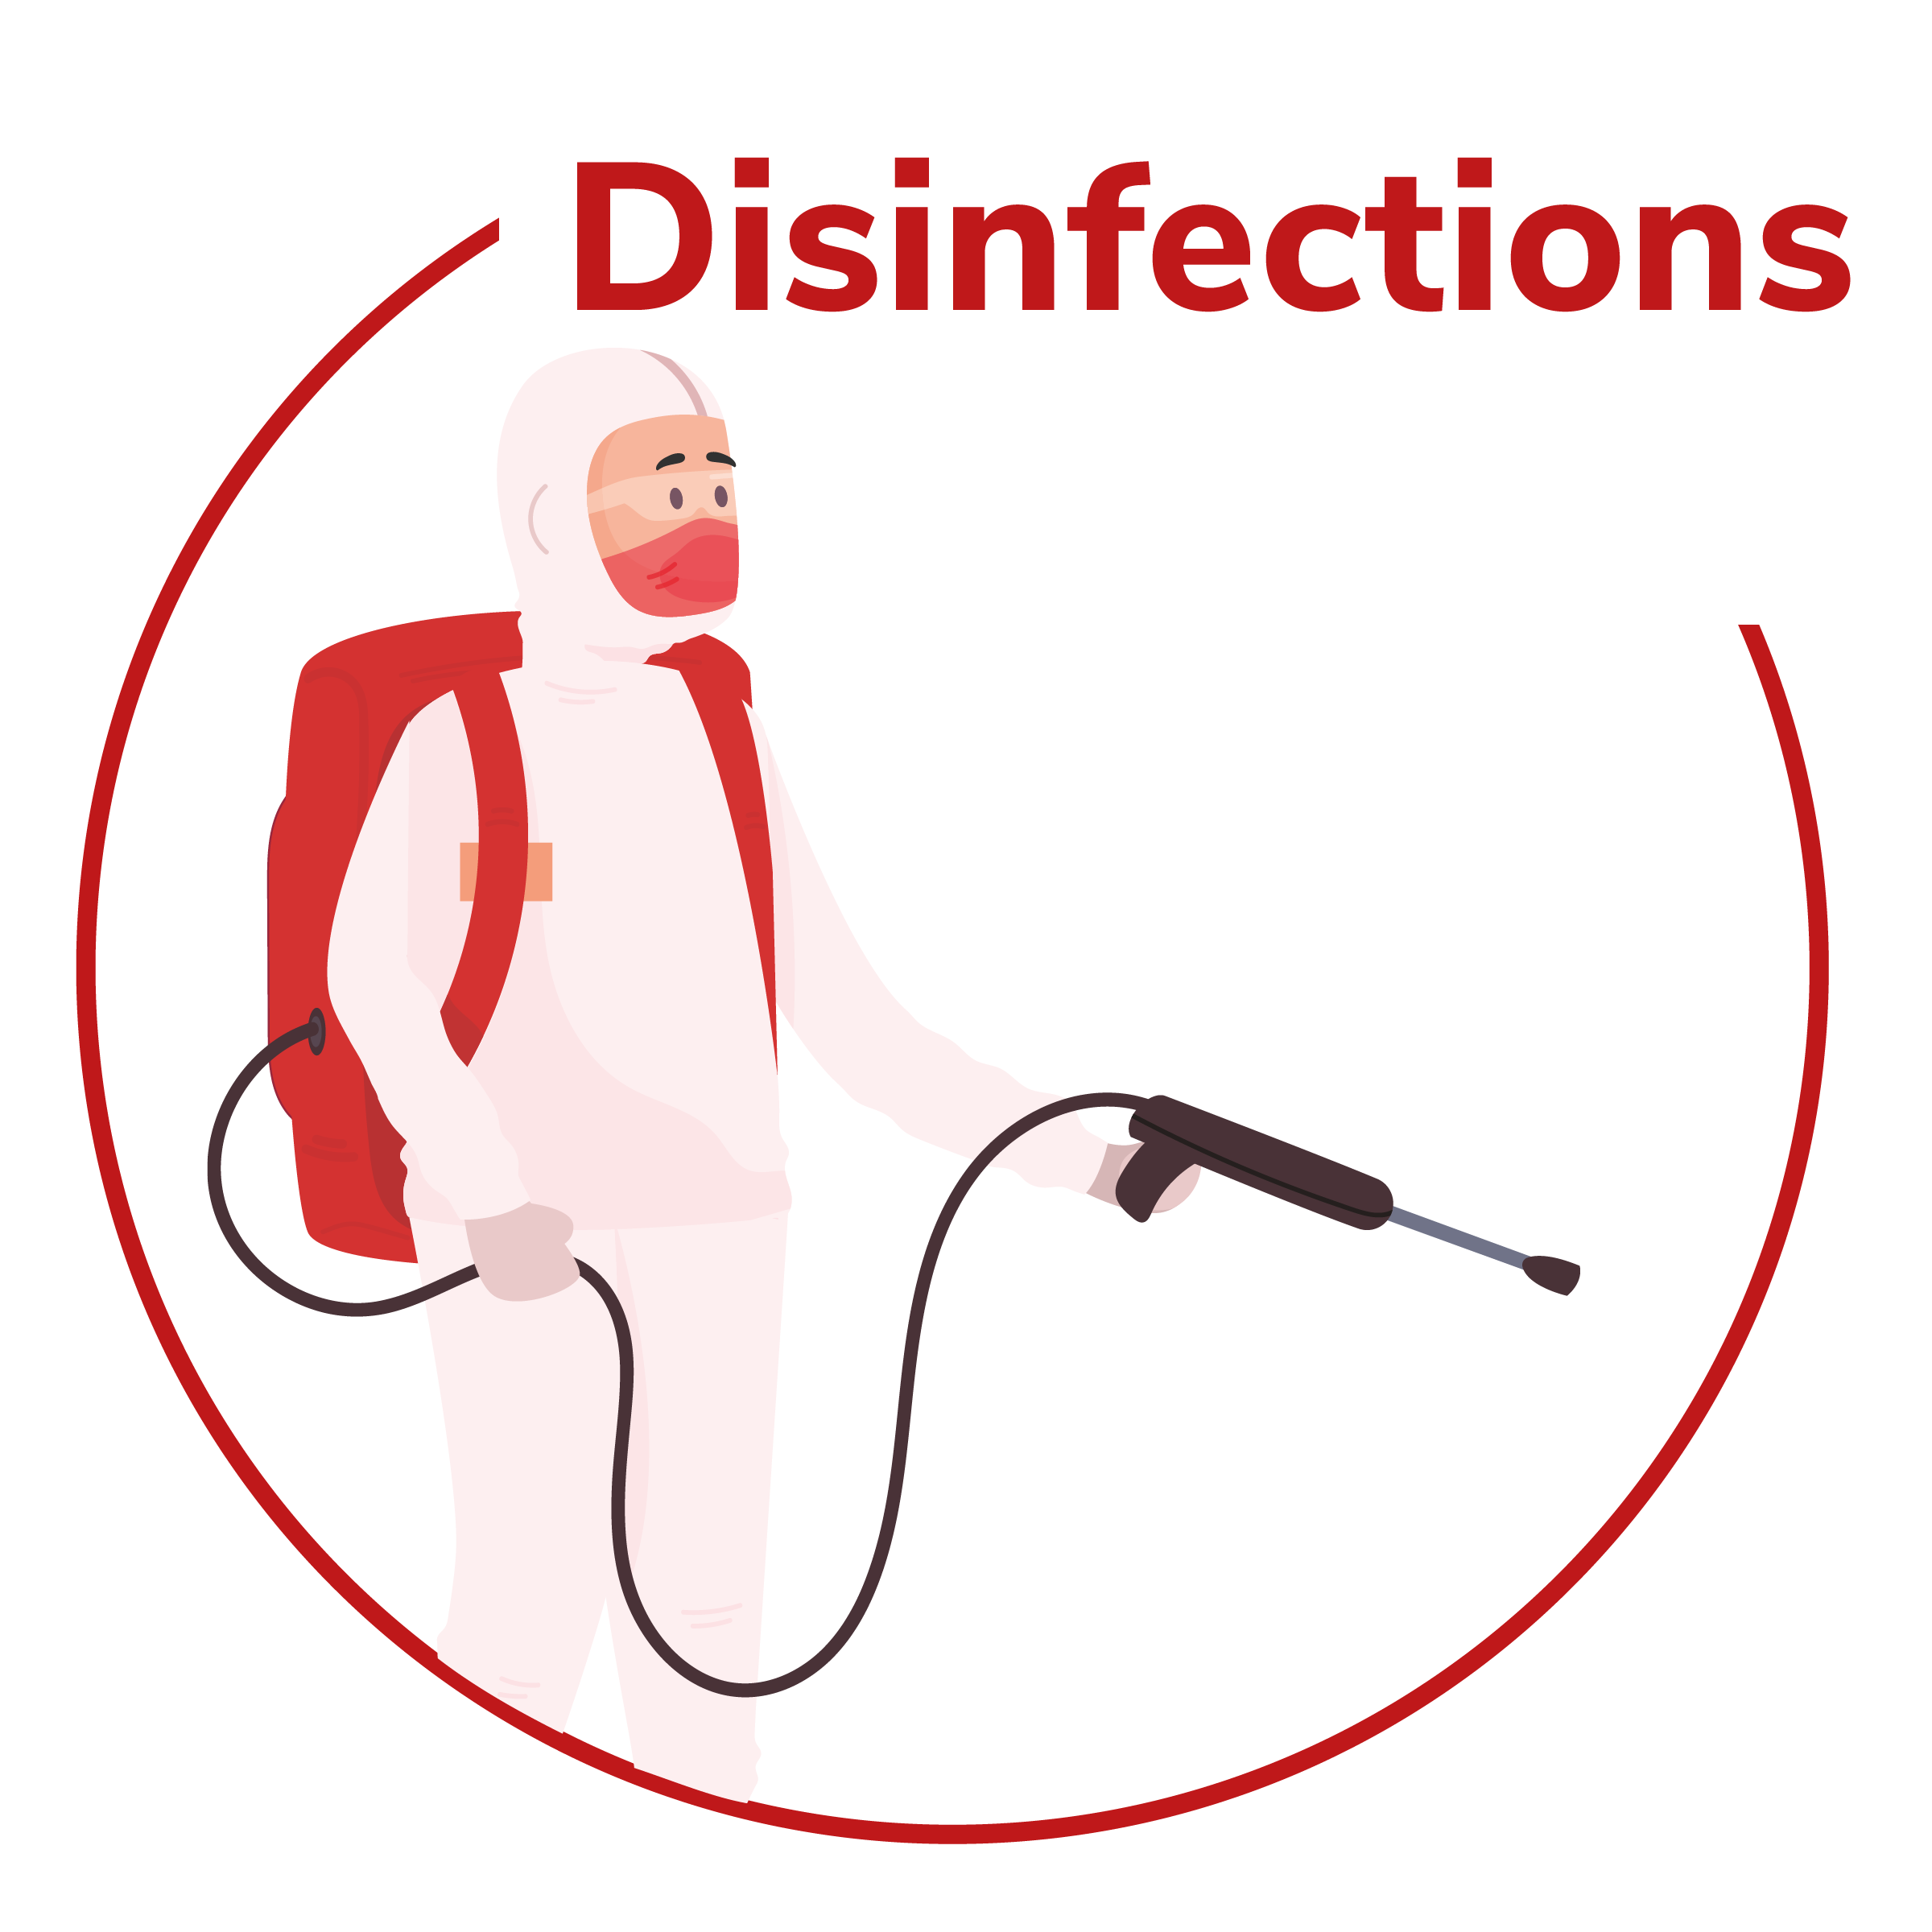 Disinfections works